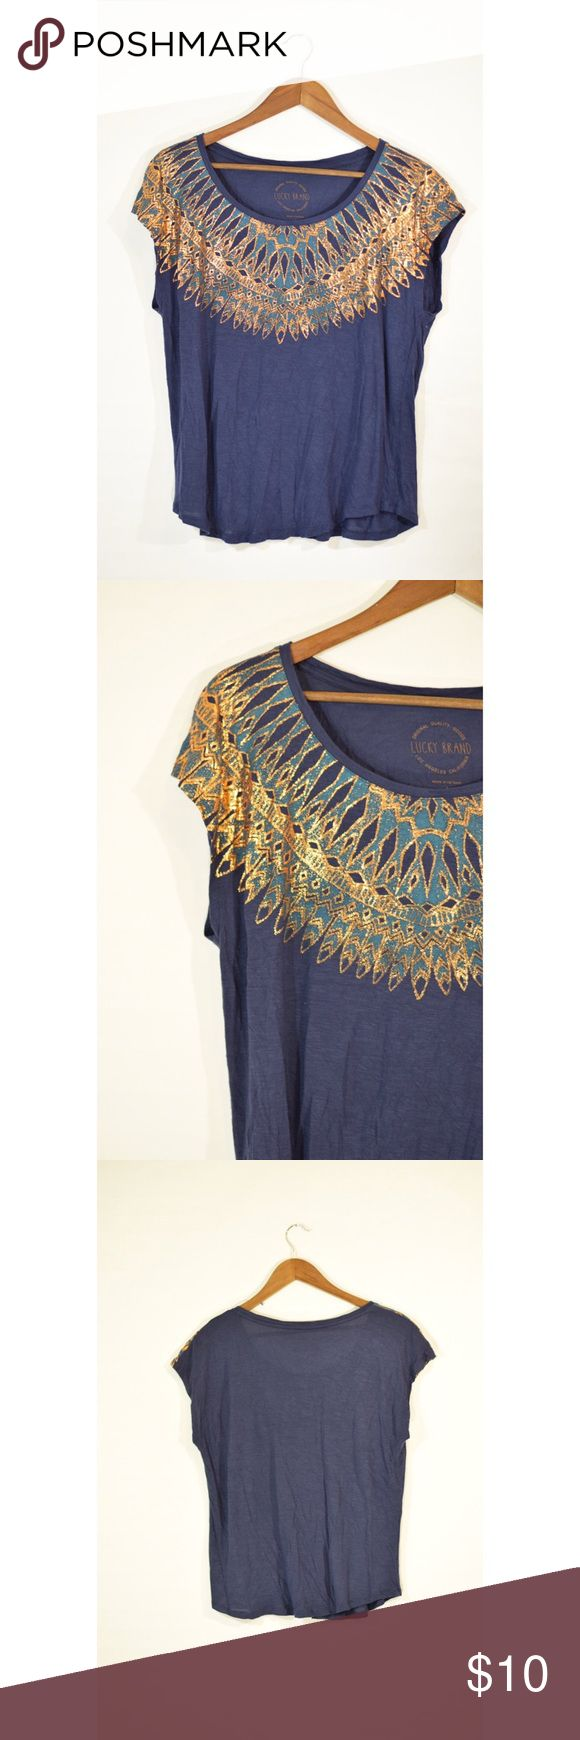 1000 Best My Posh Picks Images By Country Girl On Pinterest Imo X6 Lucky Brand Gold T Shirt